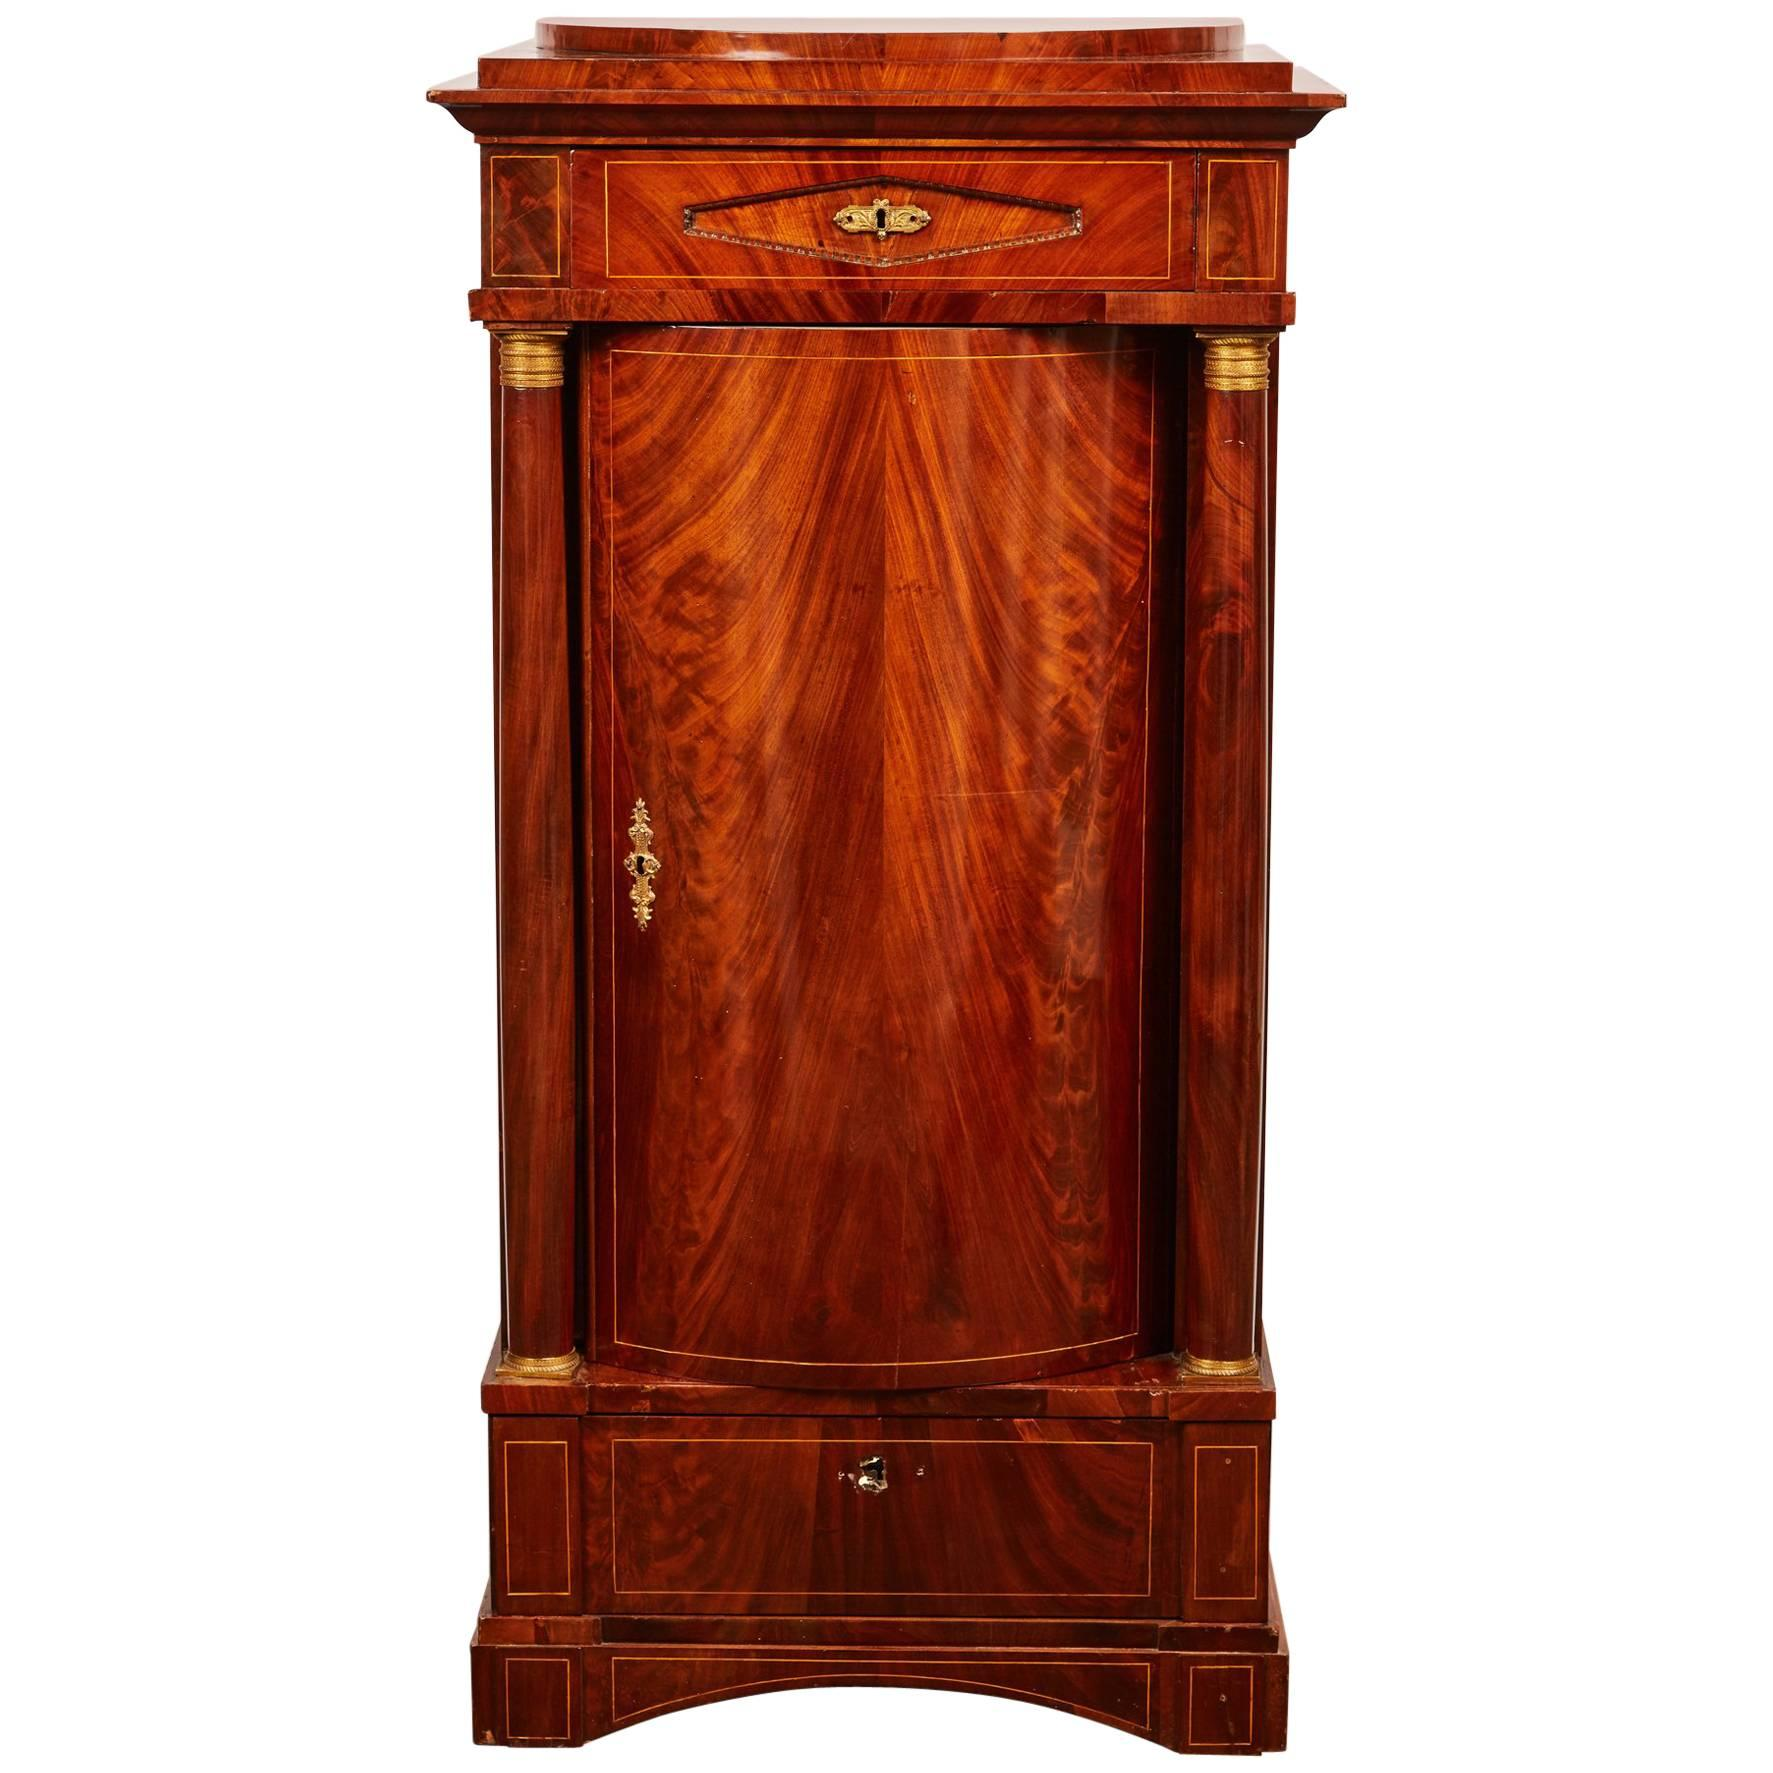 Empire Cabinets - 59 For Sale at 1stdibs